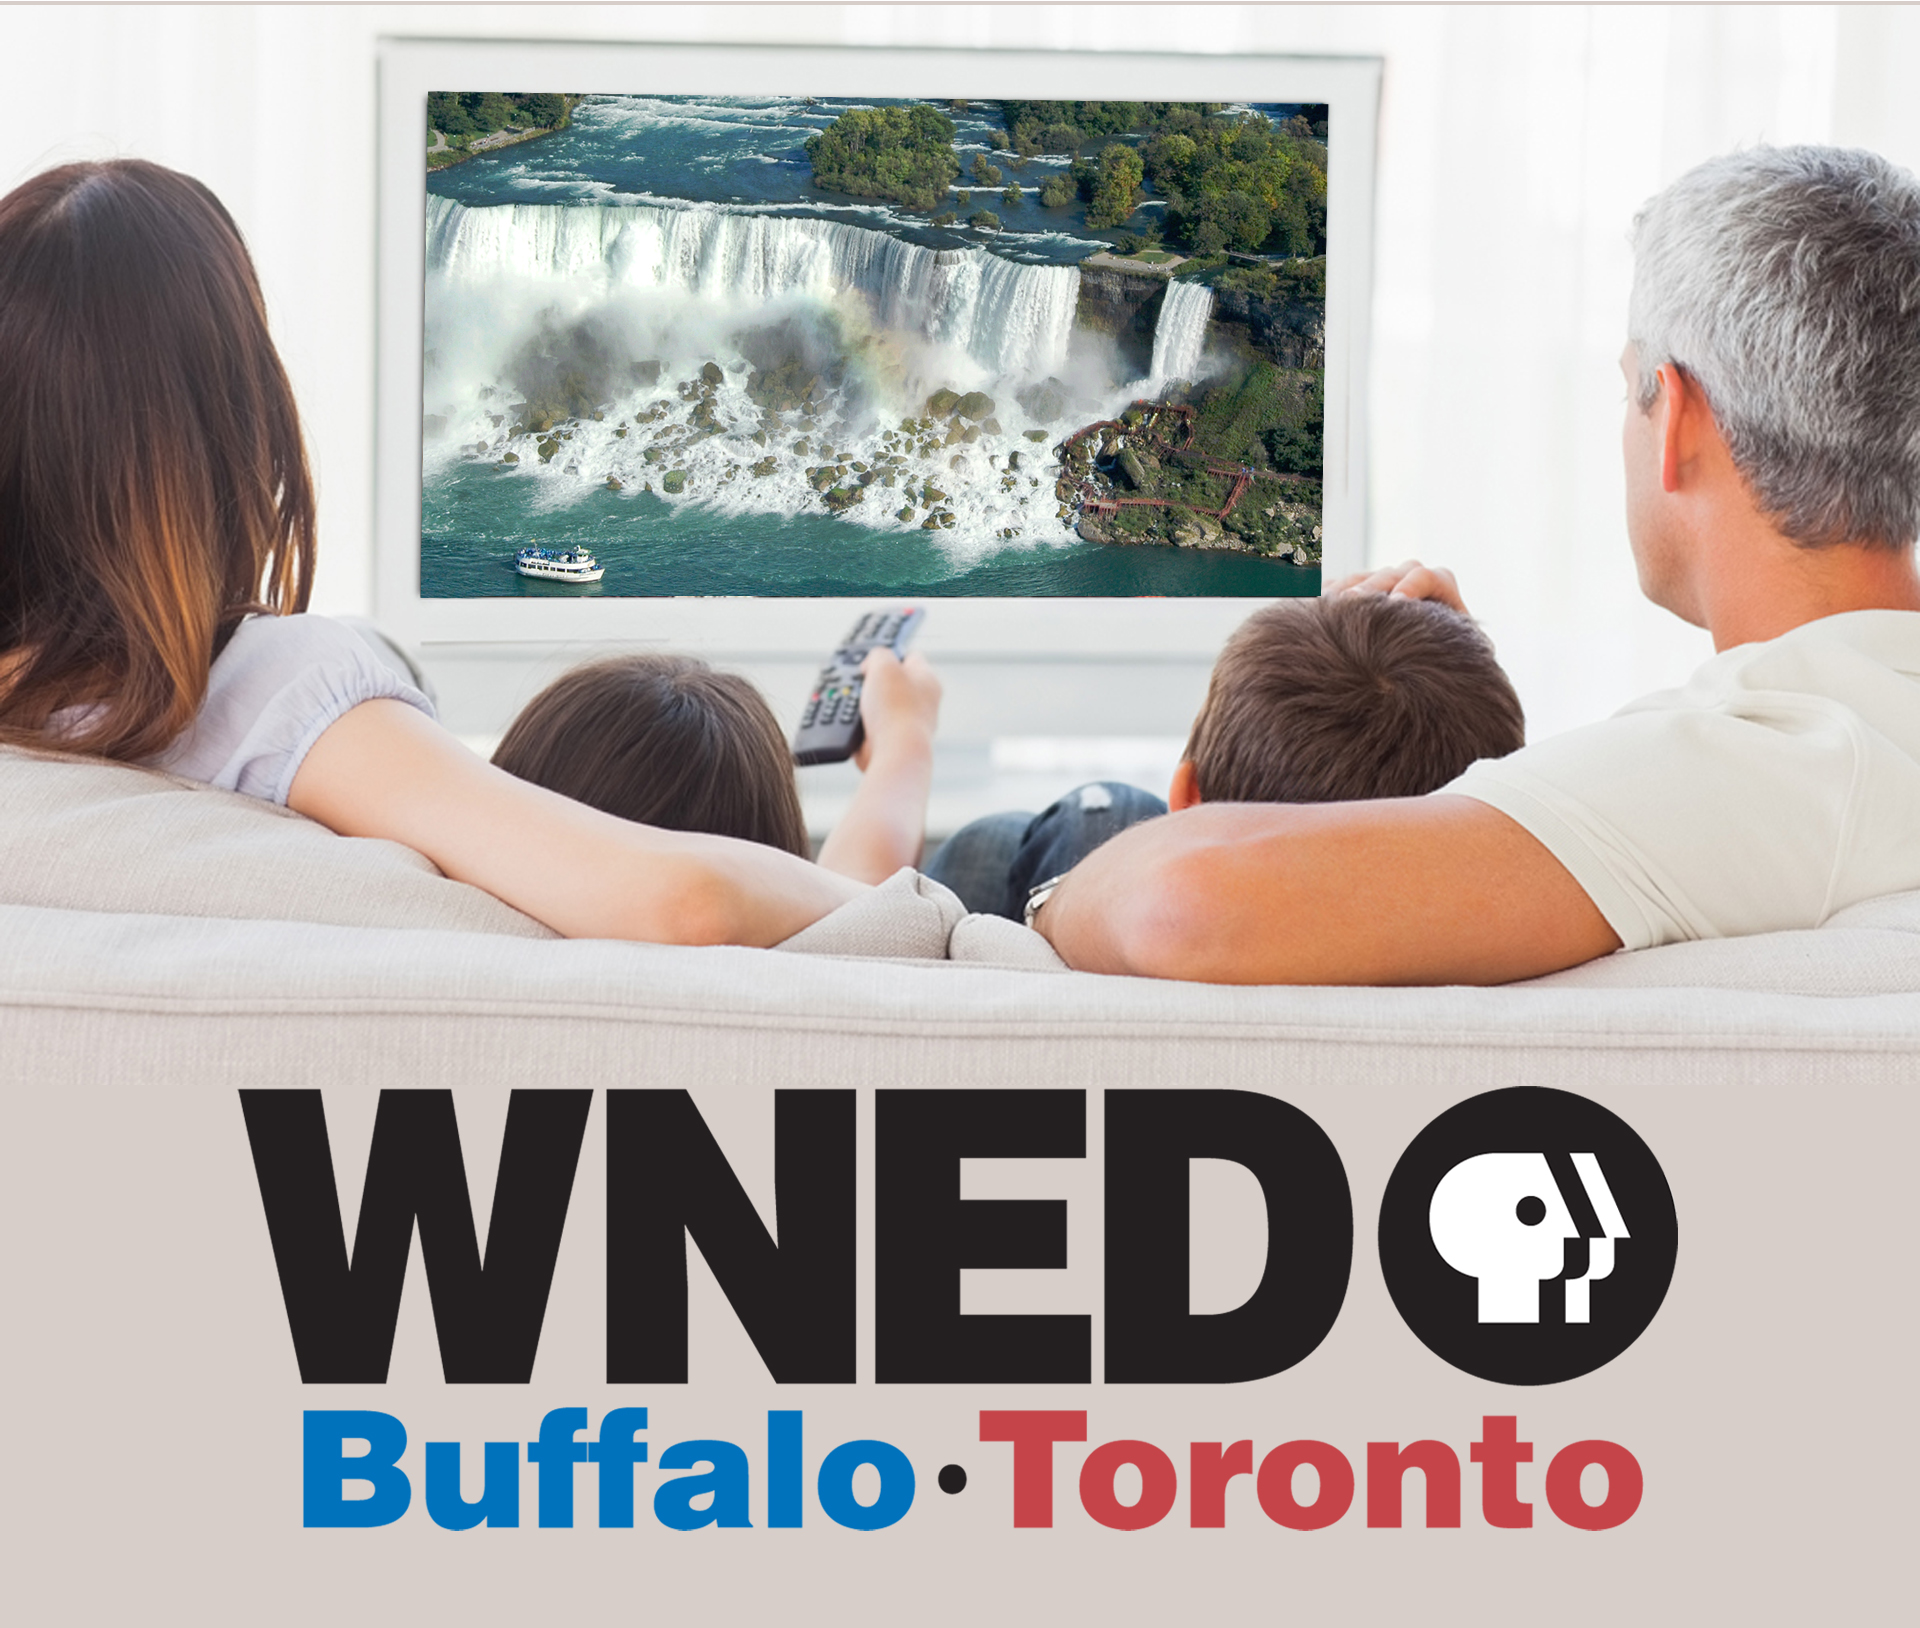 WNED-TV